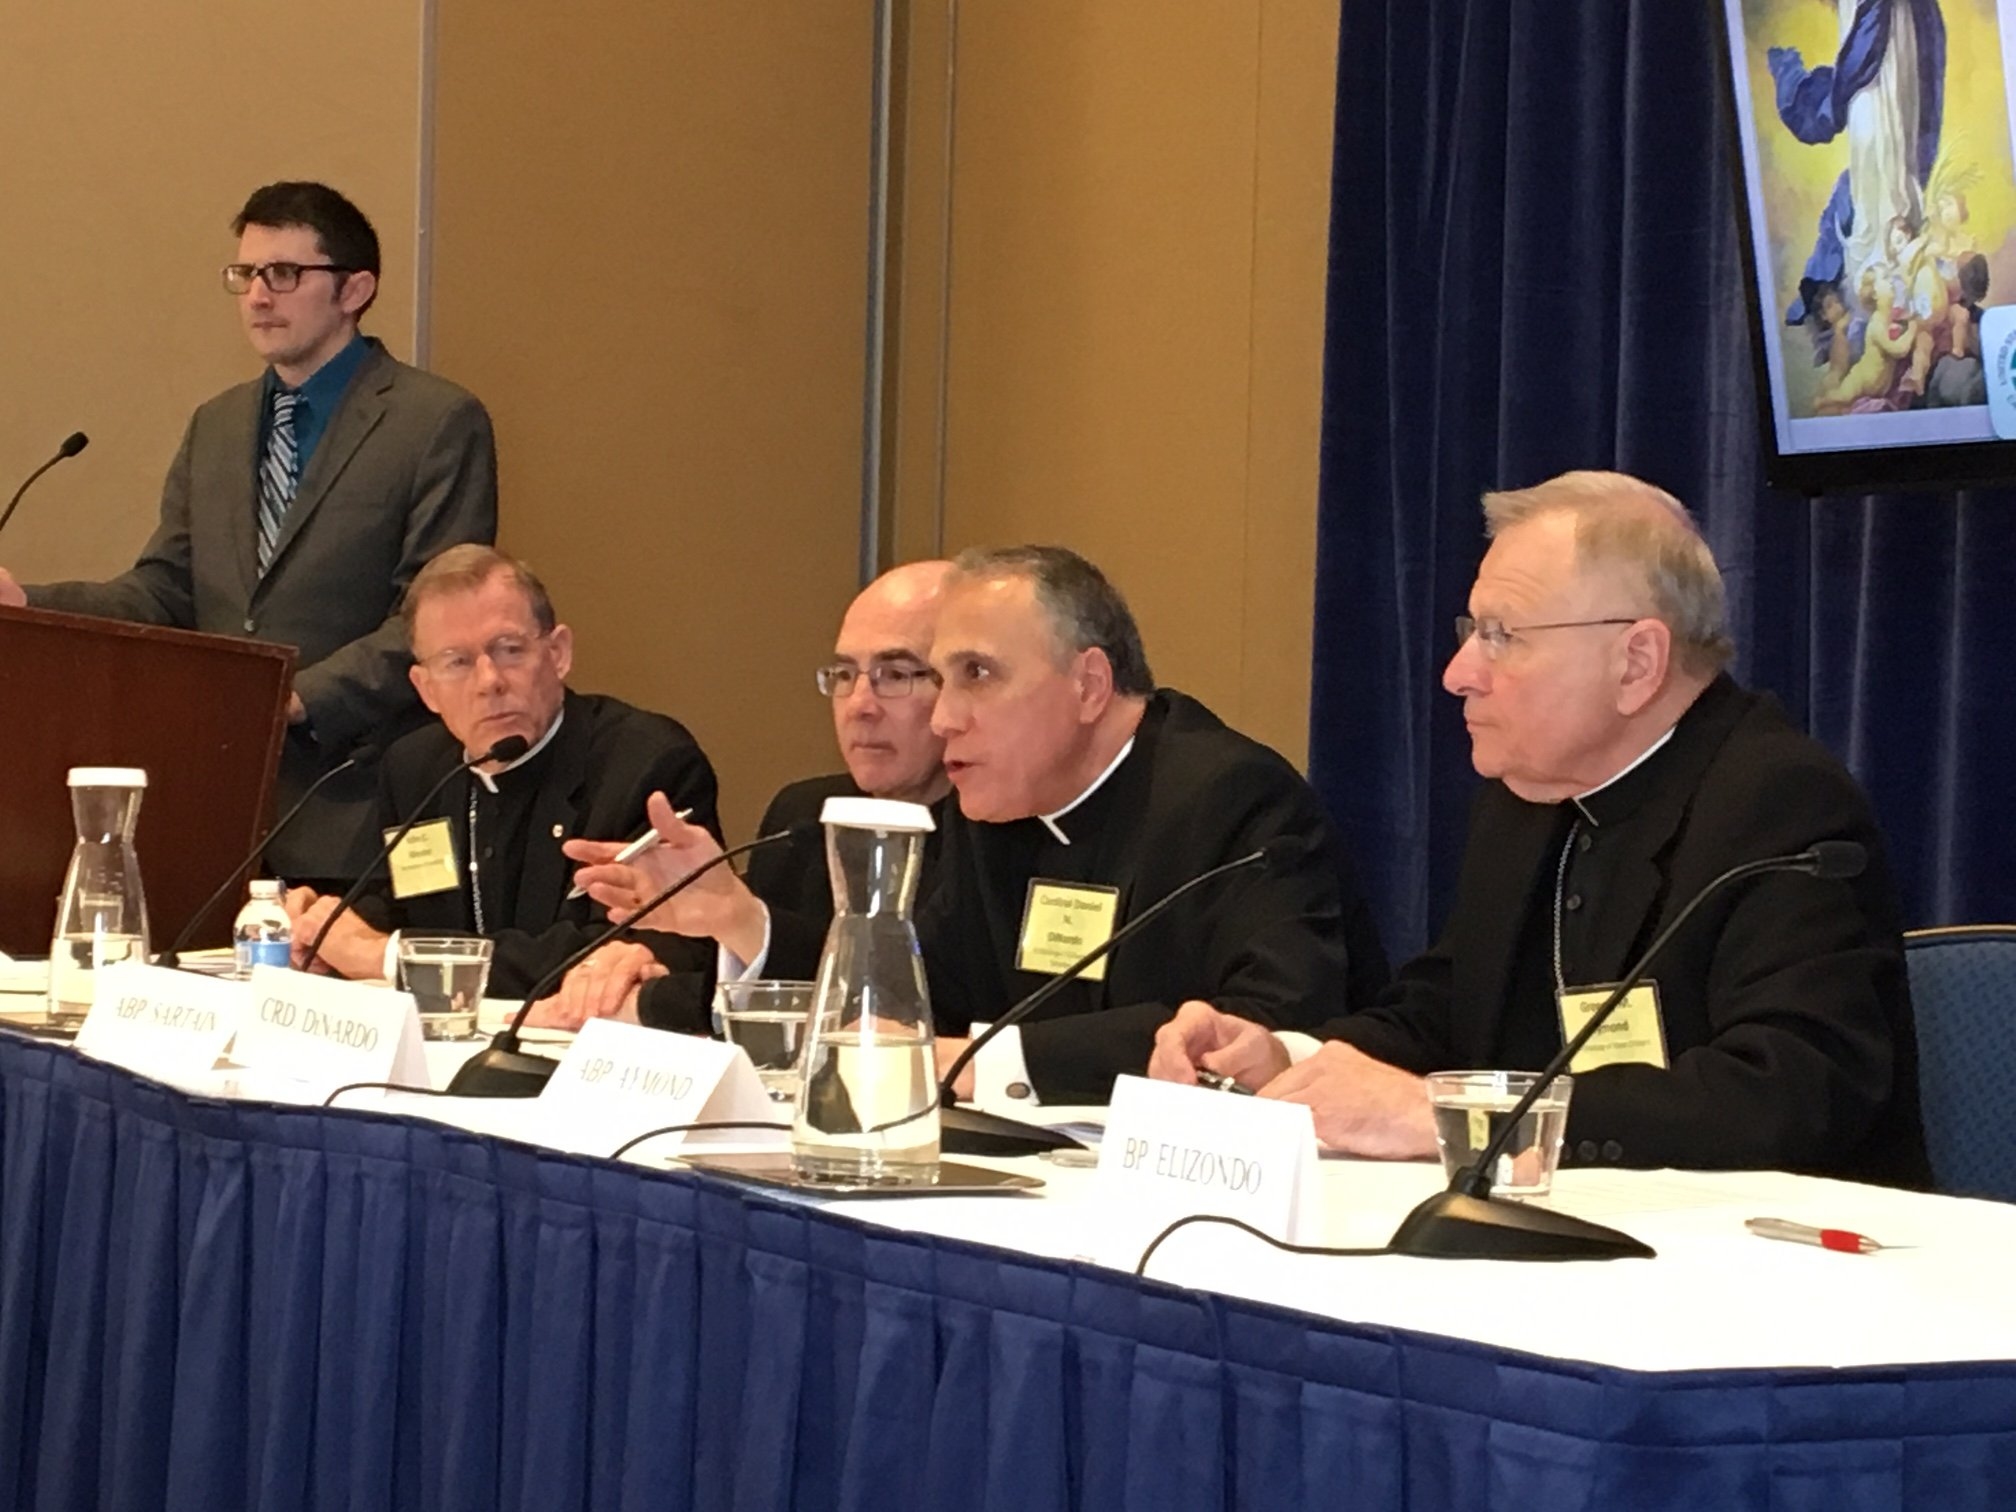 Cardinal Daniel DiNardo (second from right) speaking at a news conference during the US Catholic bishops' annual meeting in Baltimore. Photo by RNS/David Gibson.